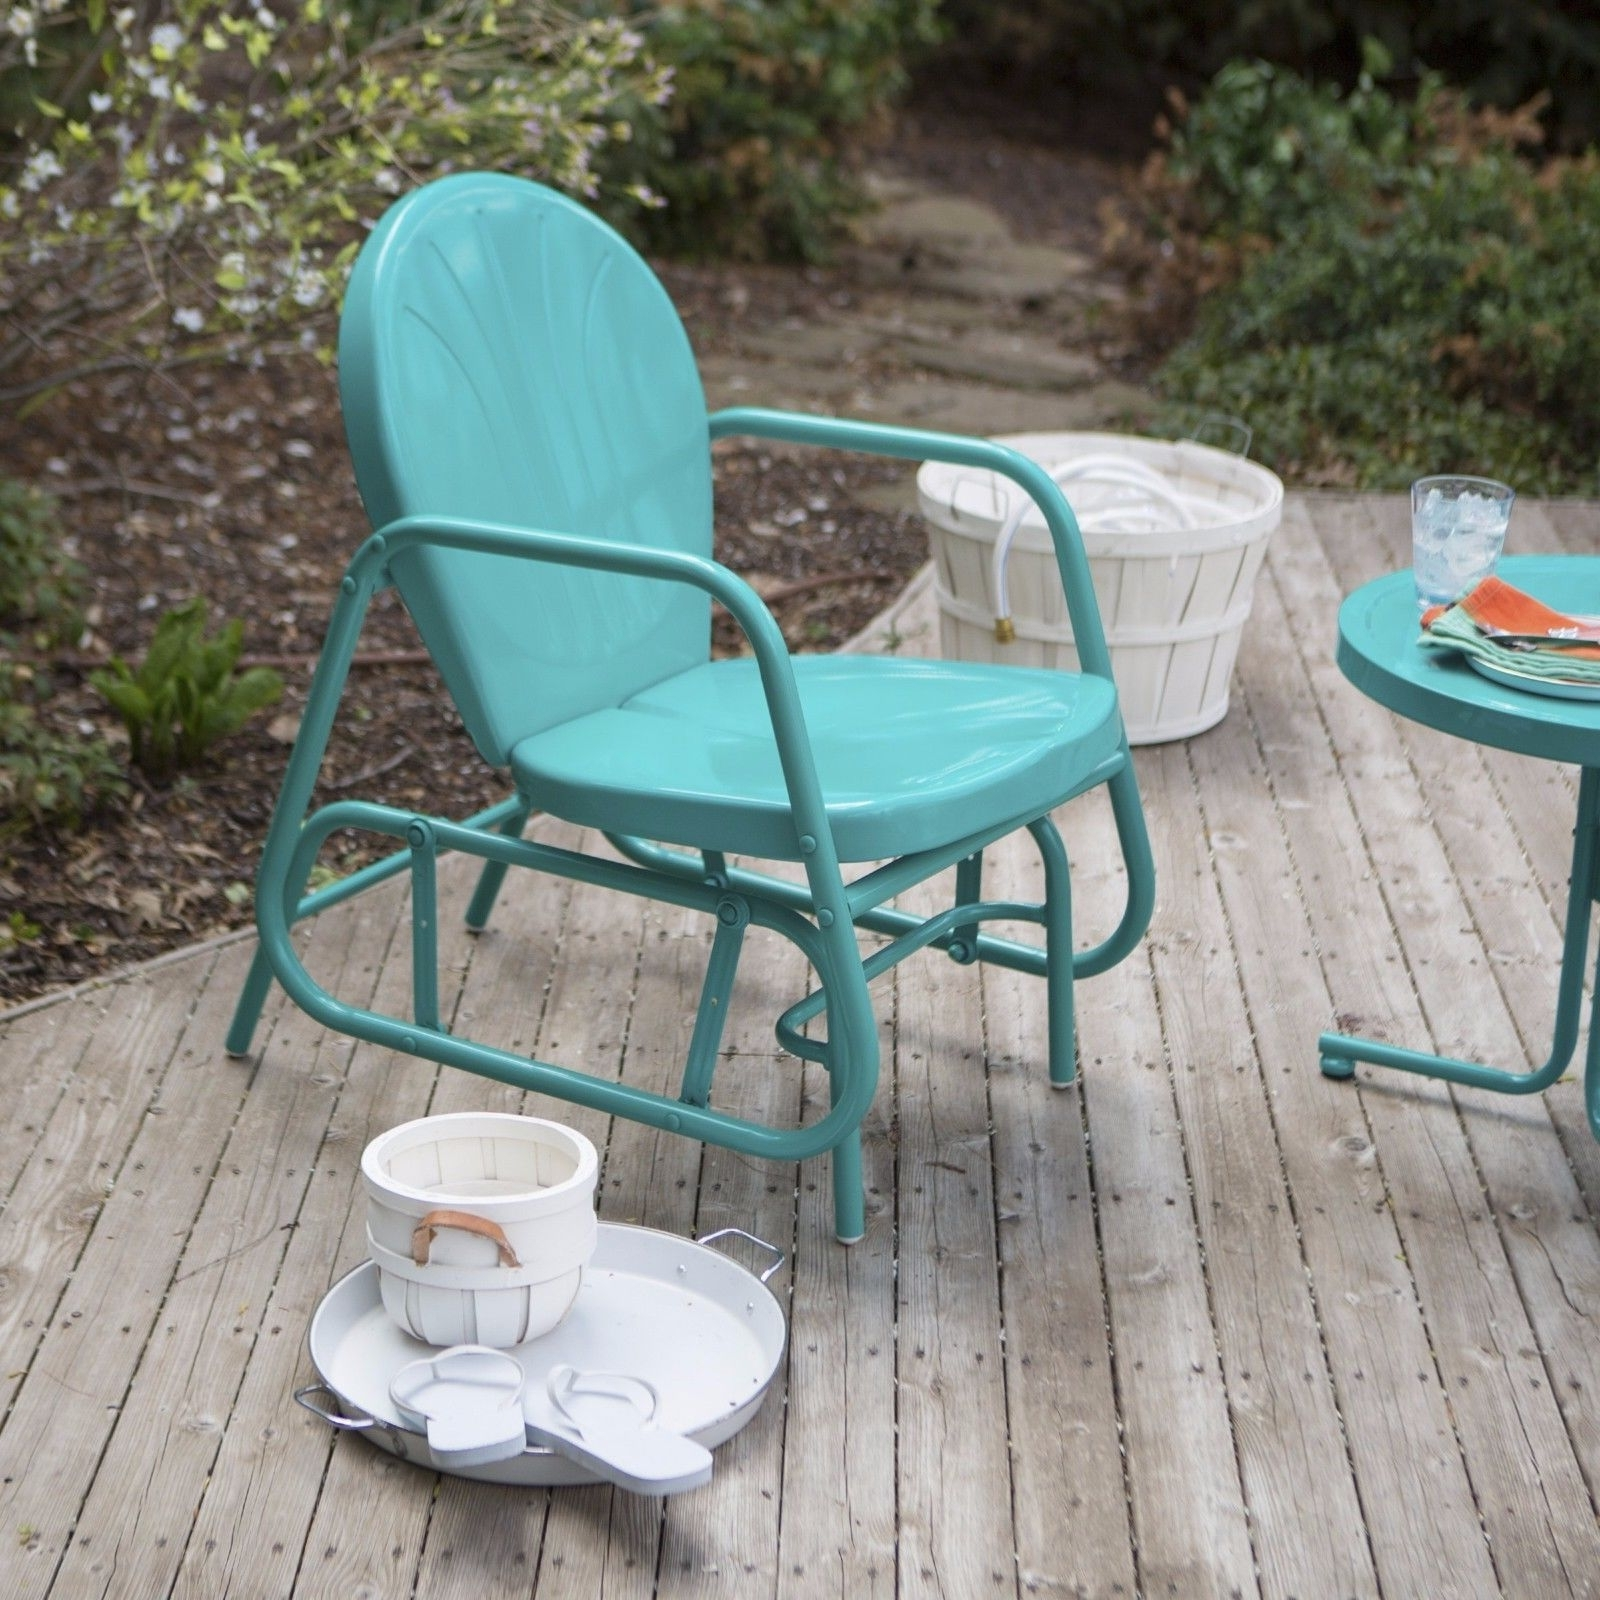 Outdoor Patio Glider Rocking Chair Retro Swing Vintage Furniture In Well Known Retro Outdoor Rocking Chairs (View 8 of 15)